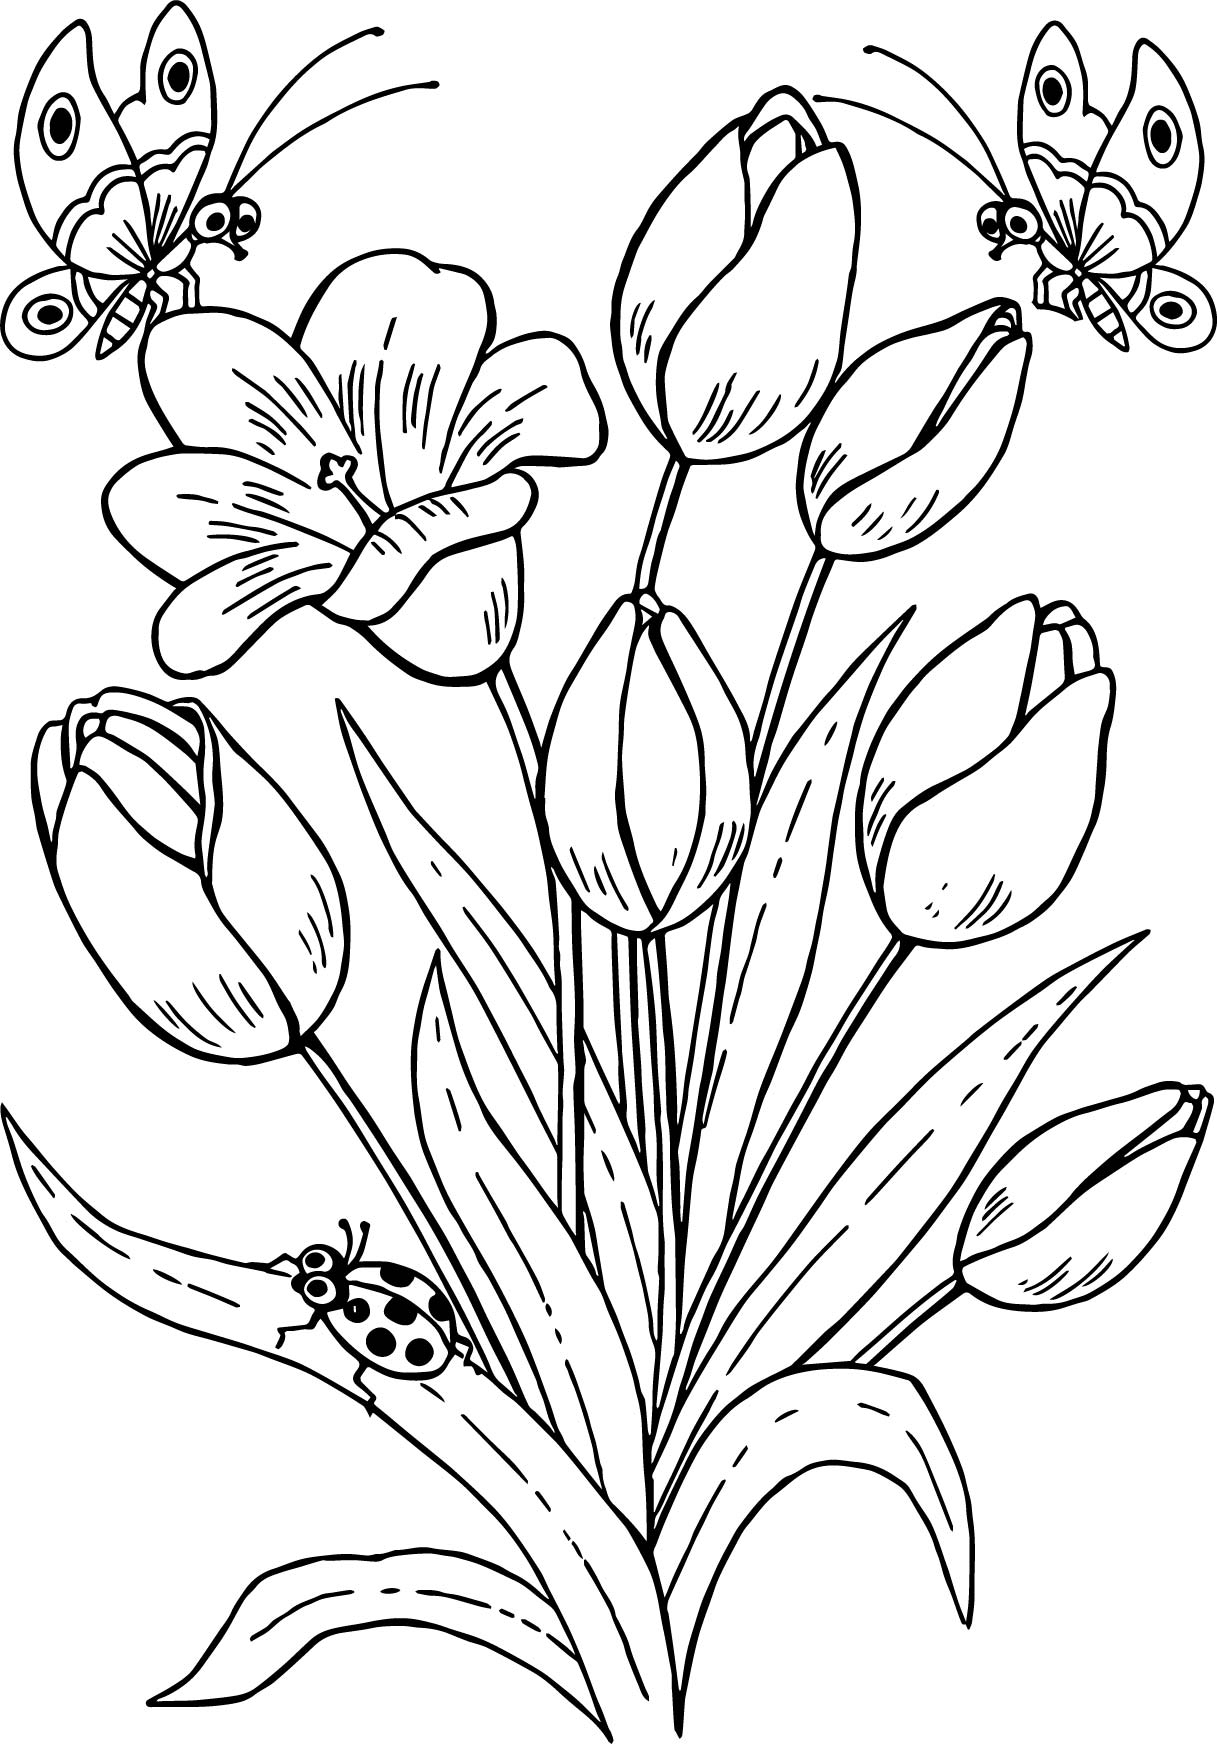 1217x1744 Drawing Butterfly And Flowers Drawing Butterfly Flowers Tulips